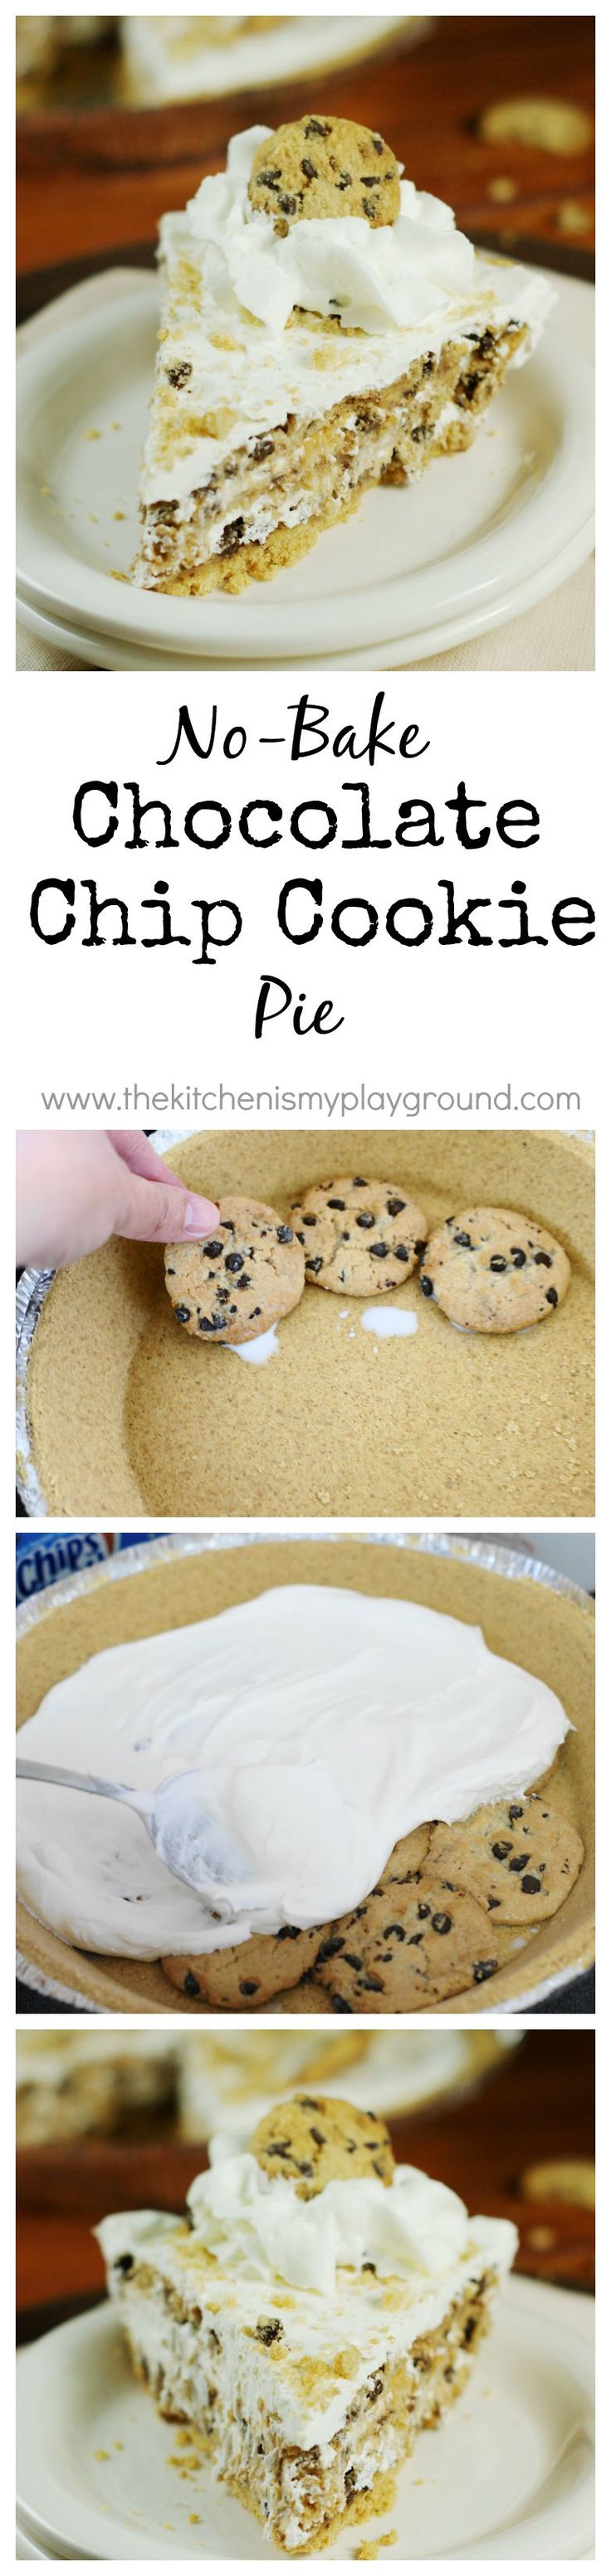 No-Bake Chocolate Chip Cookie Pie. #desserts #pies